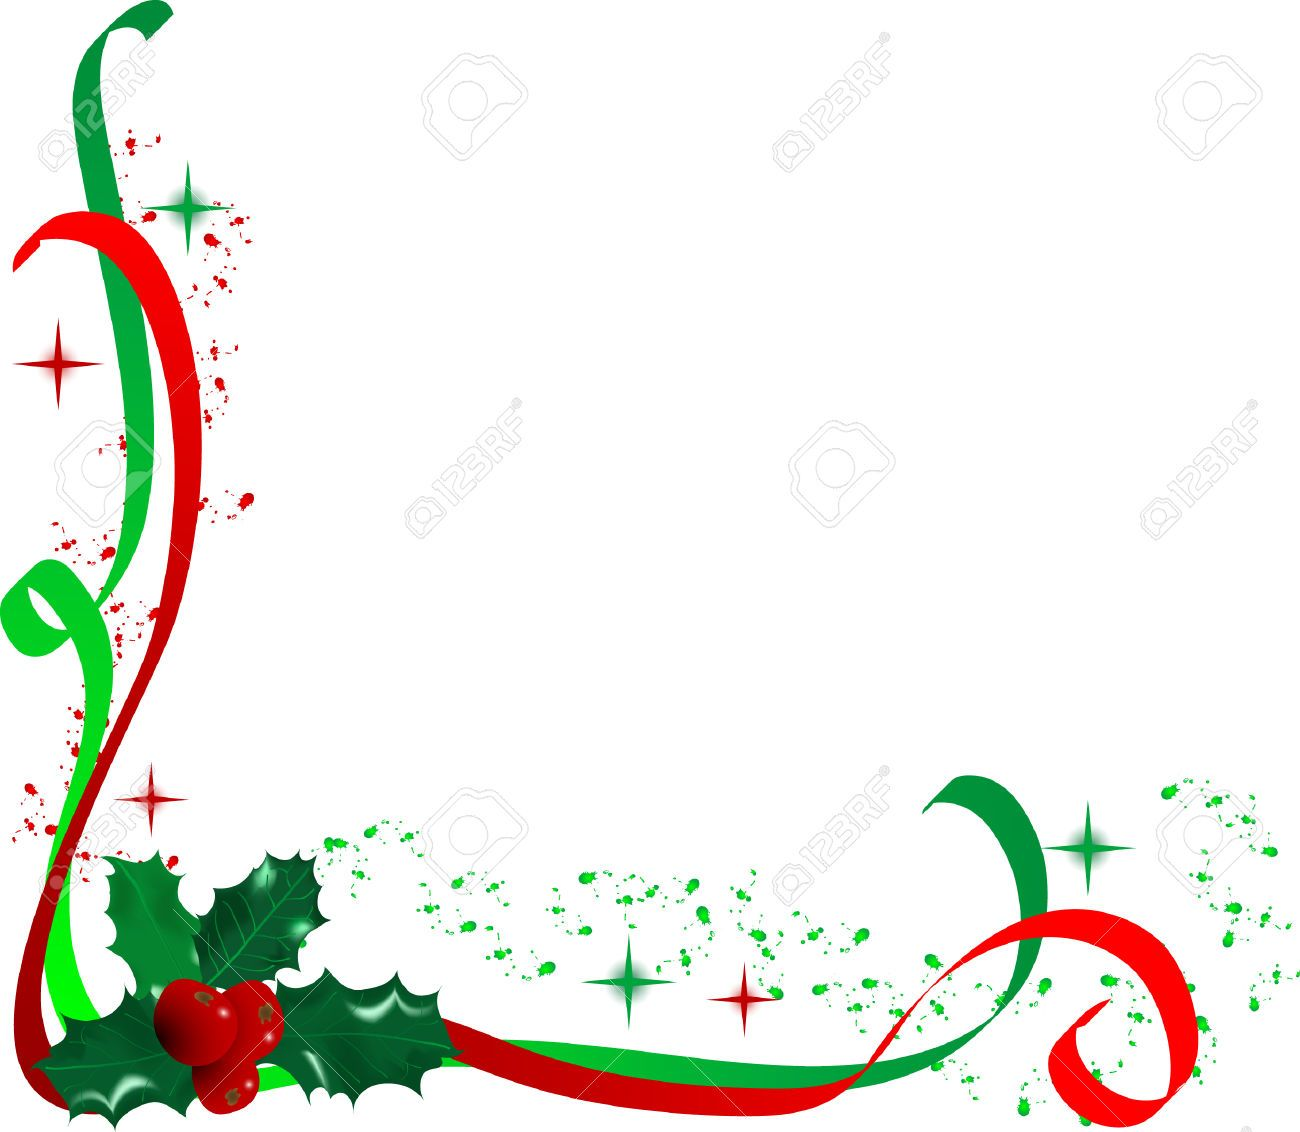 Christmas Holly Corner Border Clip Art.